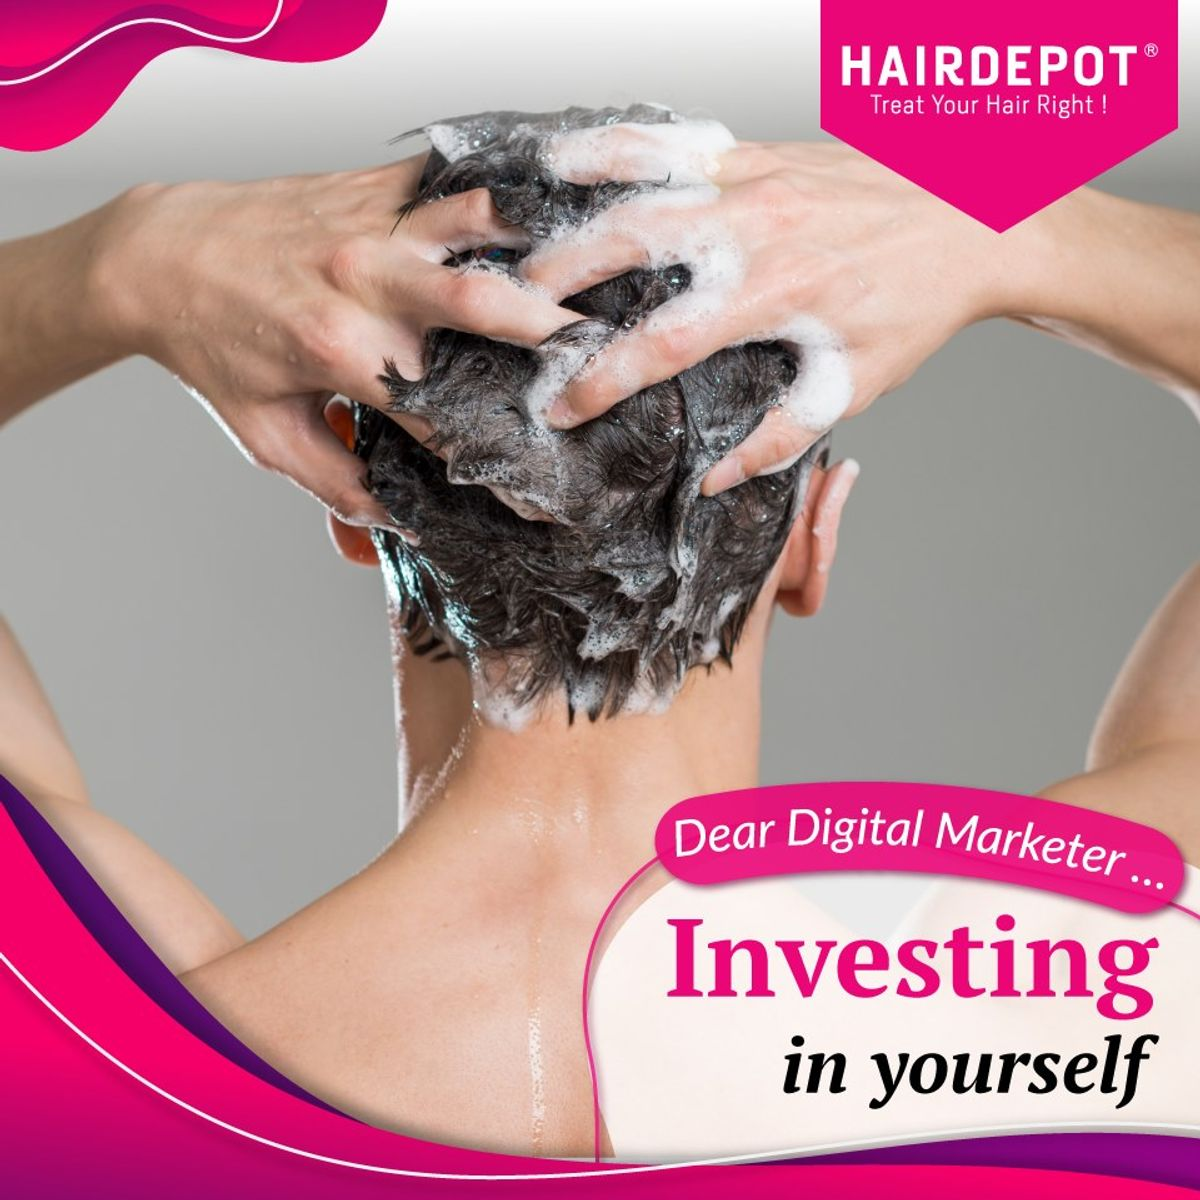 Dear Digital Marketer, Investing in Yourself